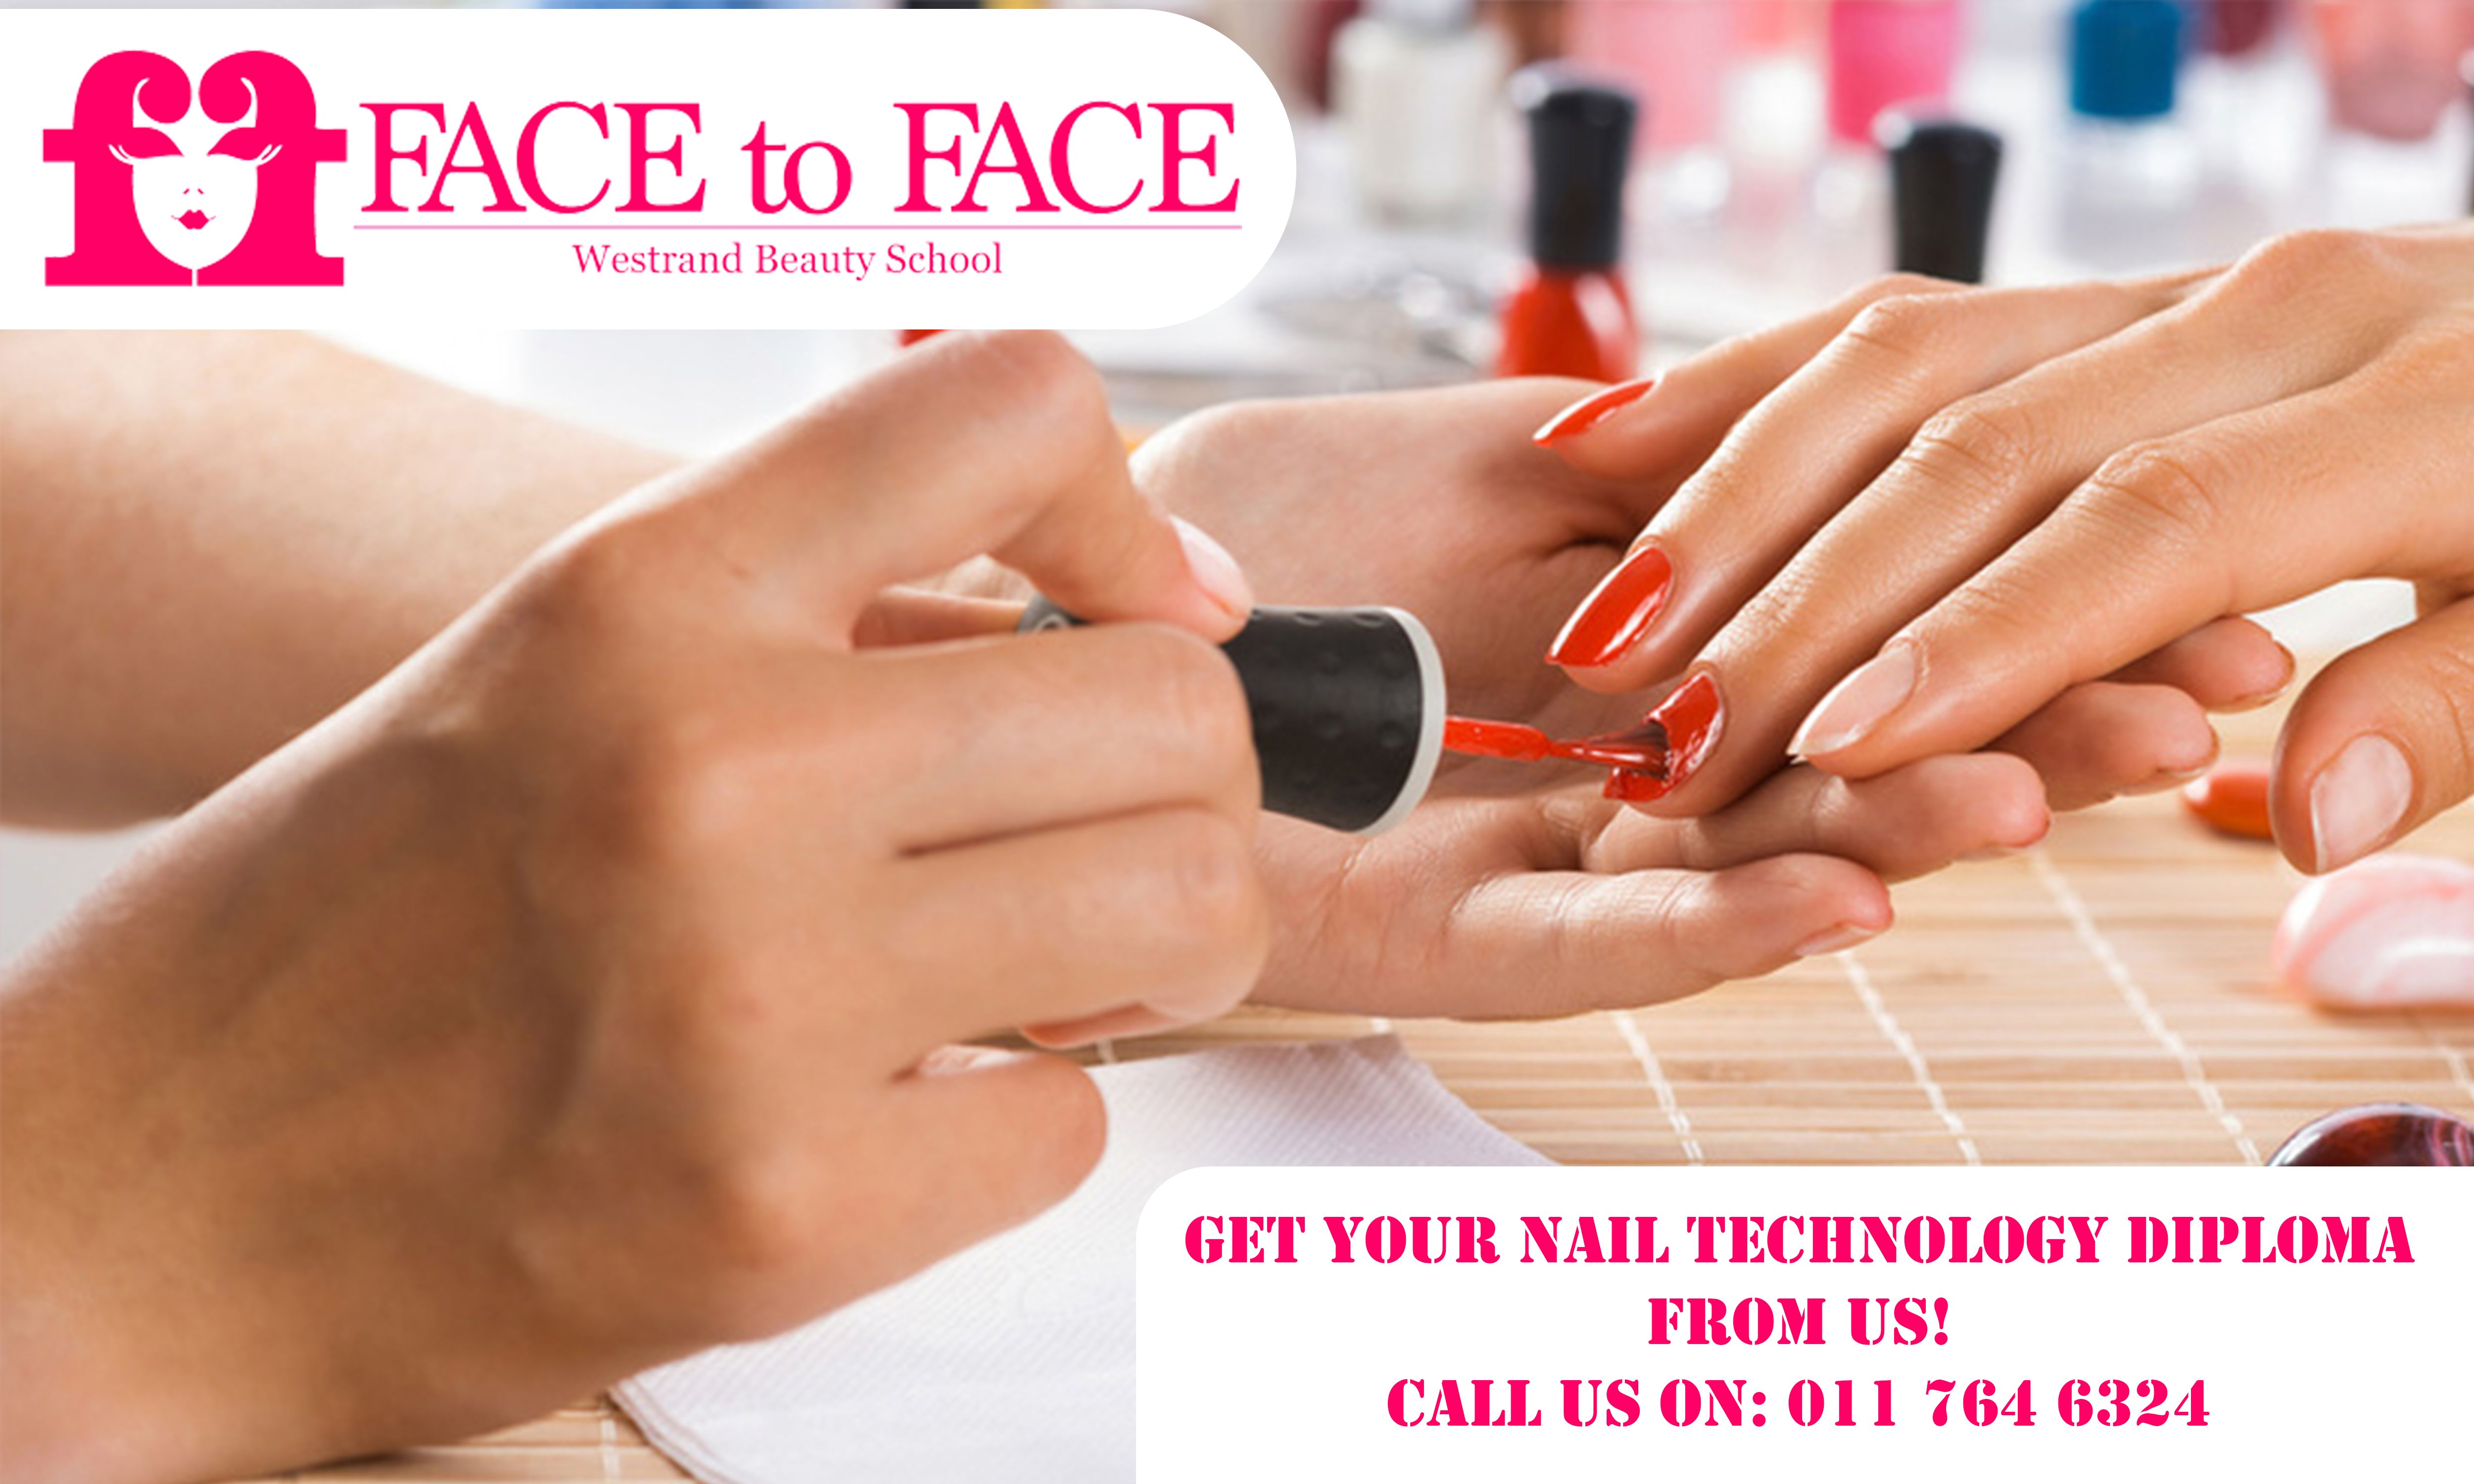 Get your Nail Technology Diploma from us! Our nail